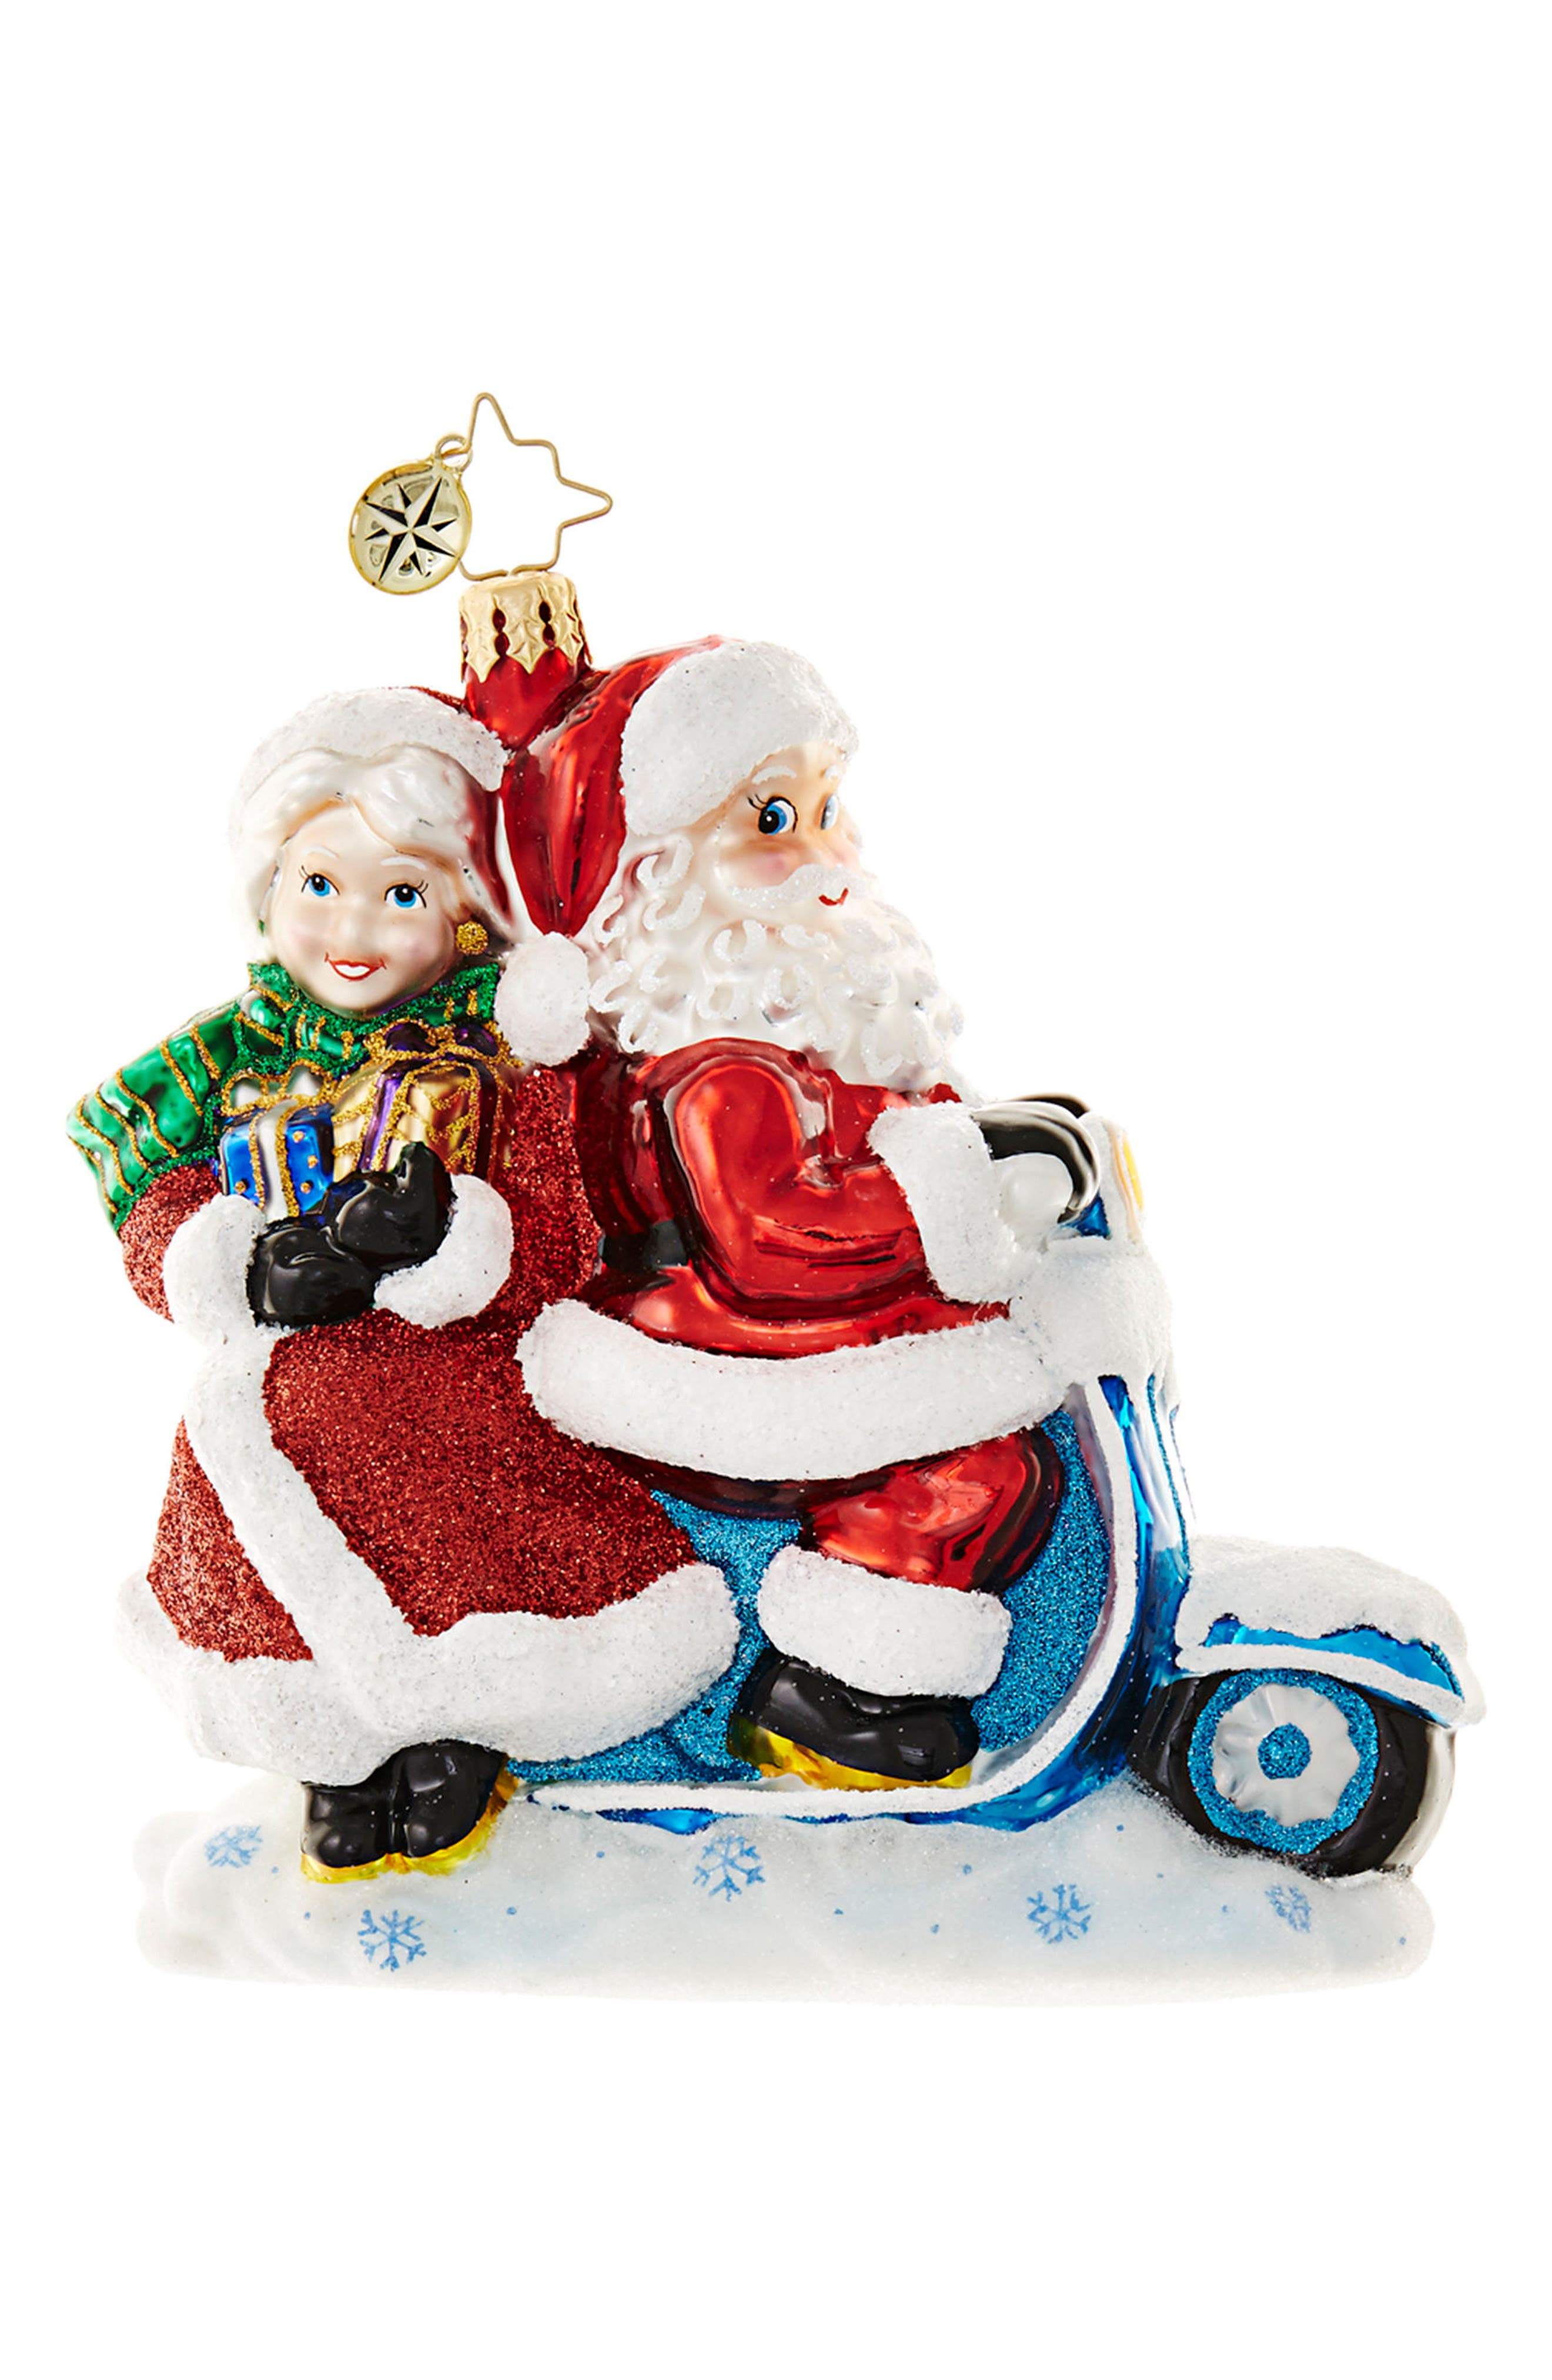 Christopher Radko Scooter for 2 Santa Claus & Mrs. Claus Ornament